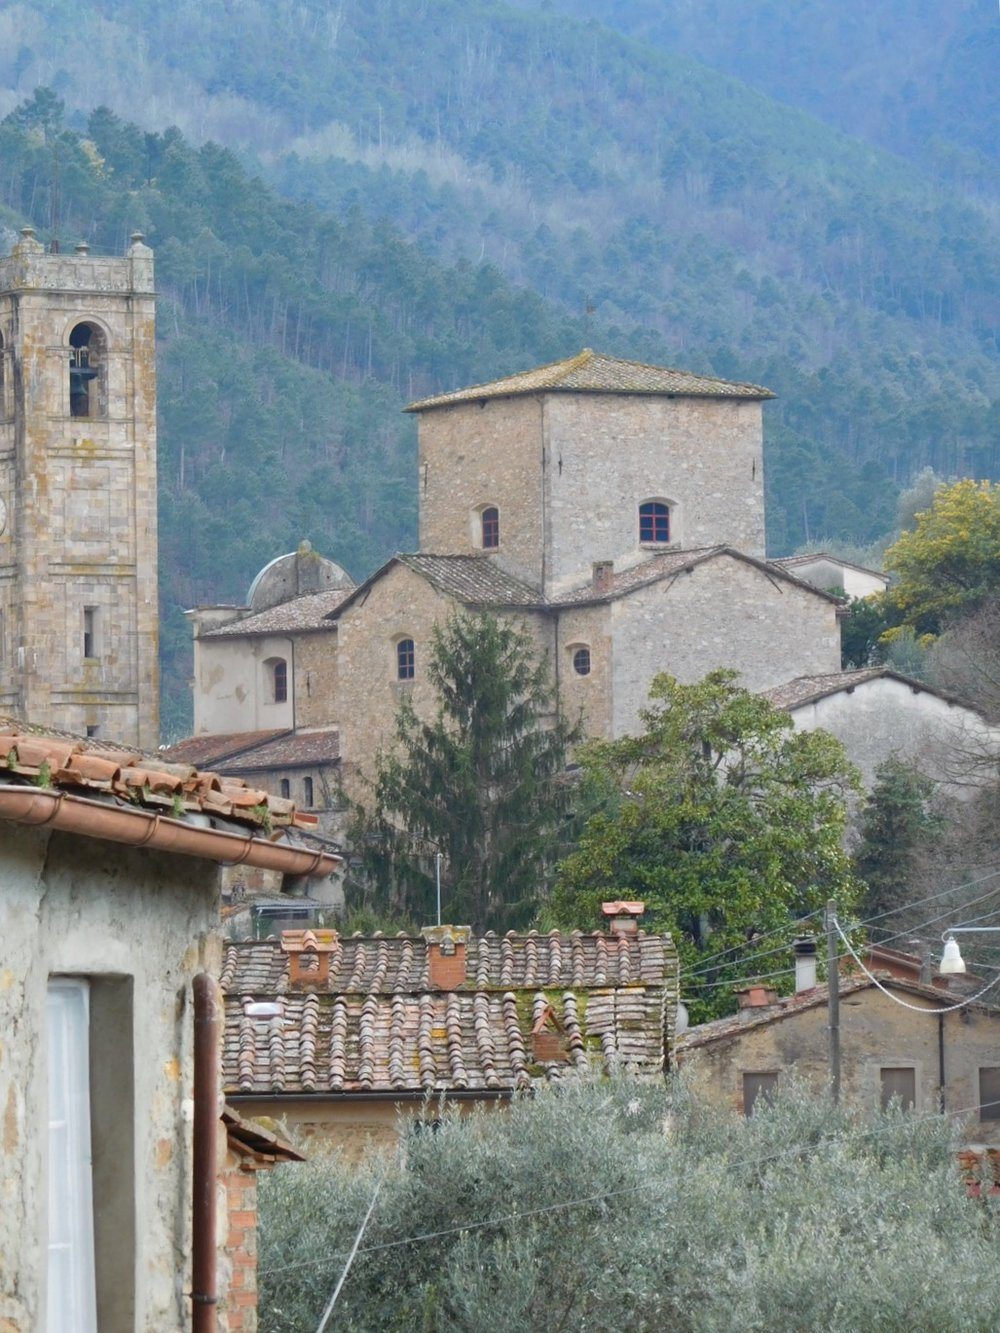 The beautiful  borgo  of Sant'Andrea di Compito